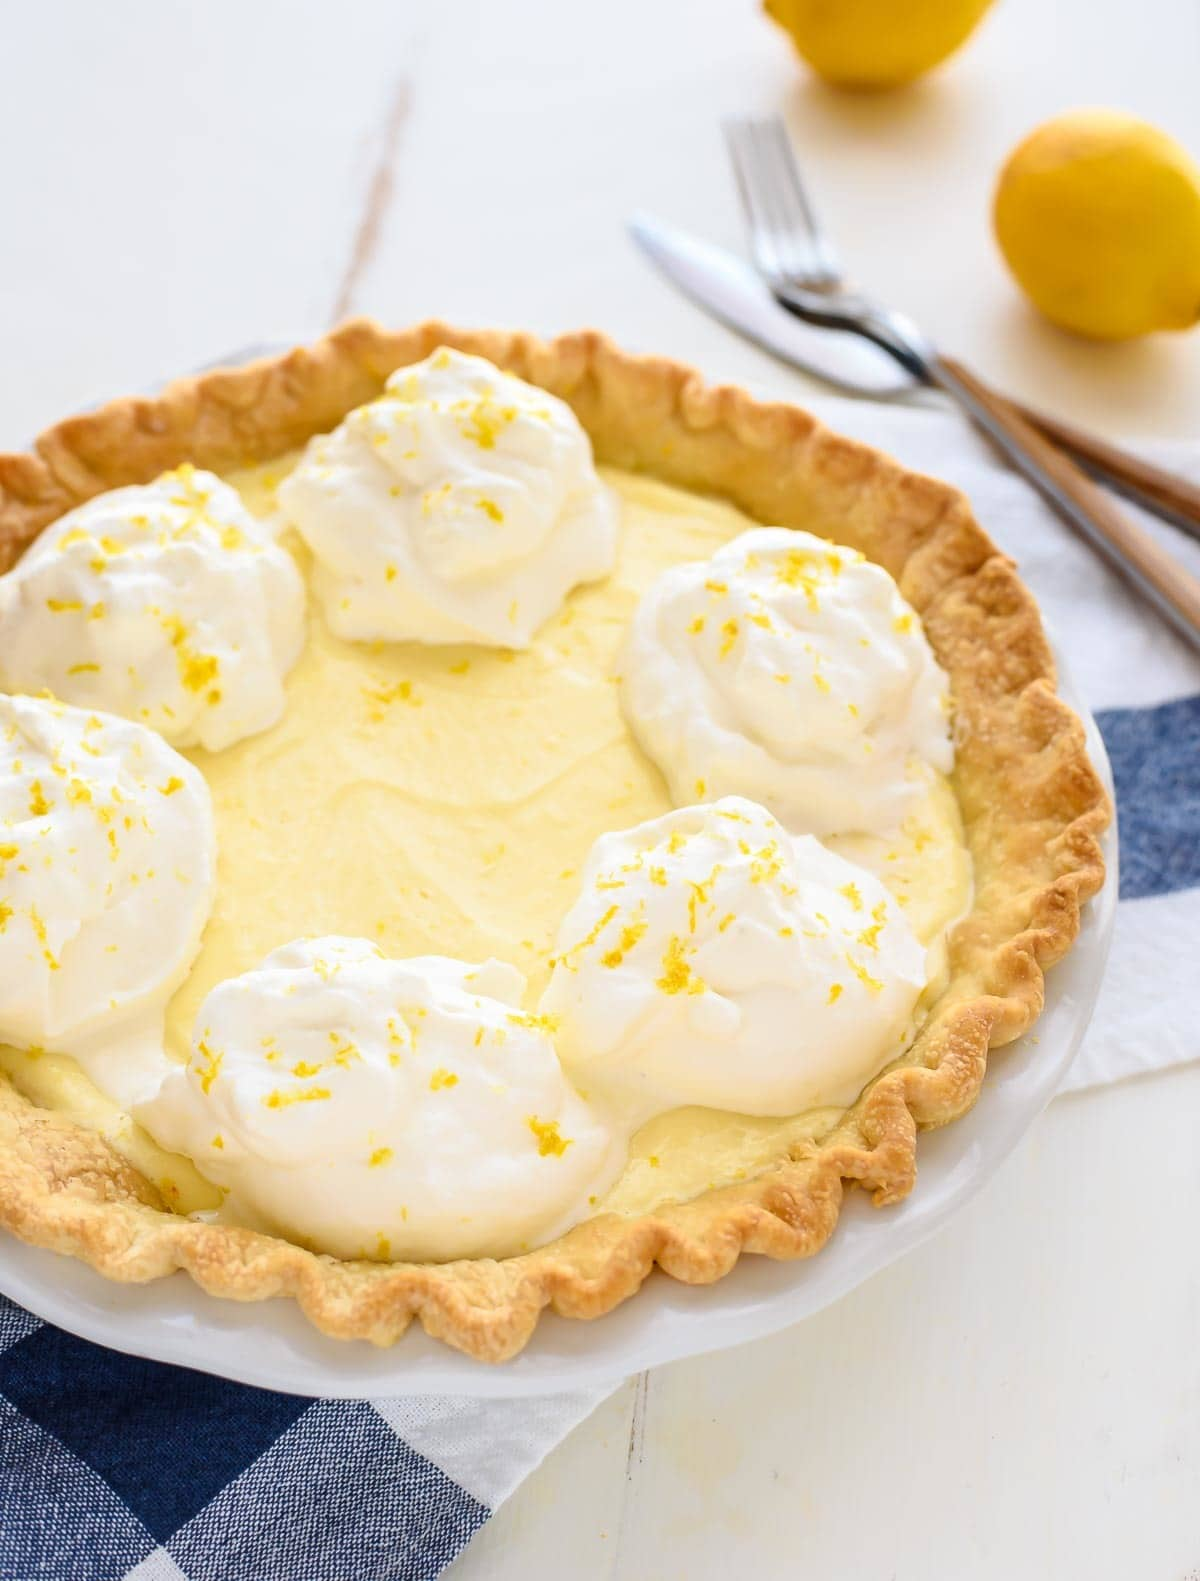 The best homemade Lemon Cream Pie. My grandmother's original recipe with lemon custard and cream cheese. This has been in our family for more than 50 years! @wellplated